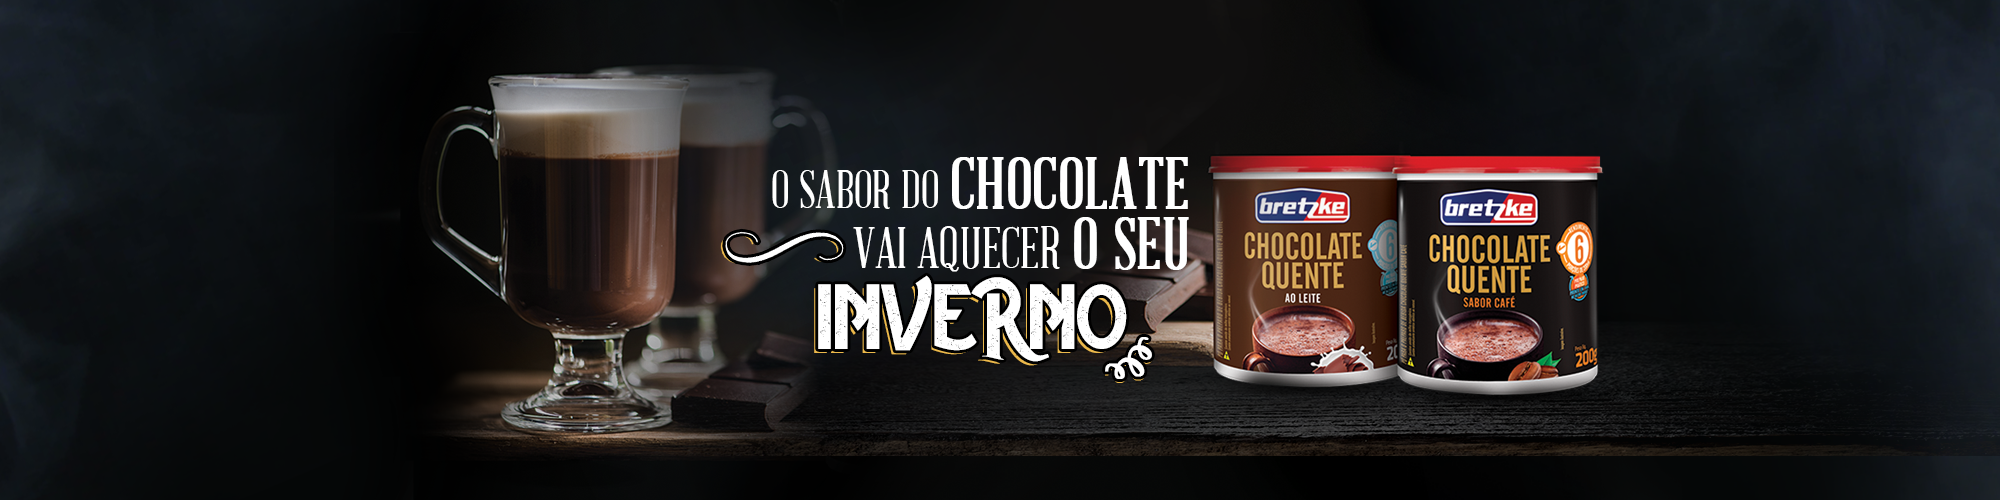 Chocolate Quente 2019